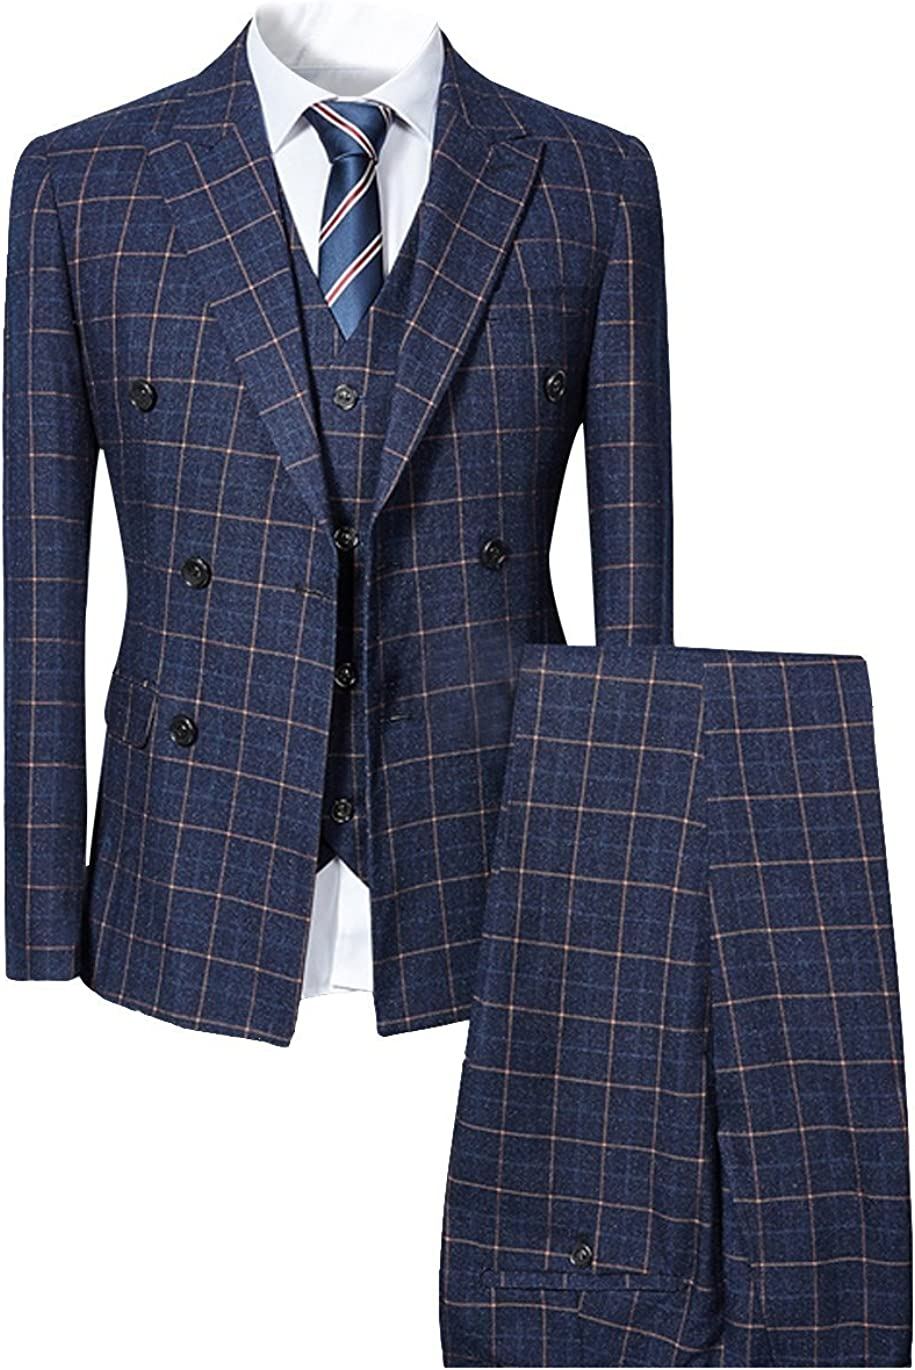 Mens Blue Slim Fit 3 Piece Checked Suits Double Breasted Vintage Fashion